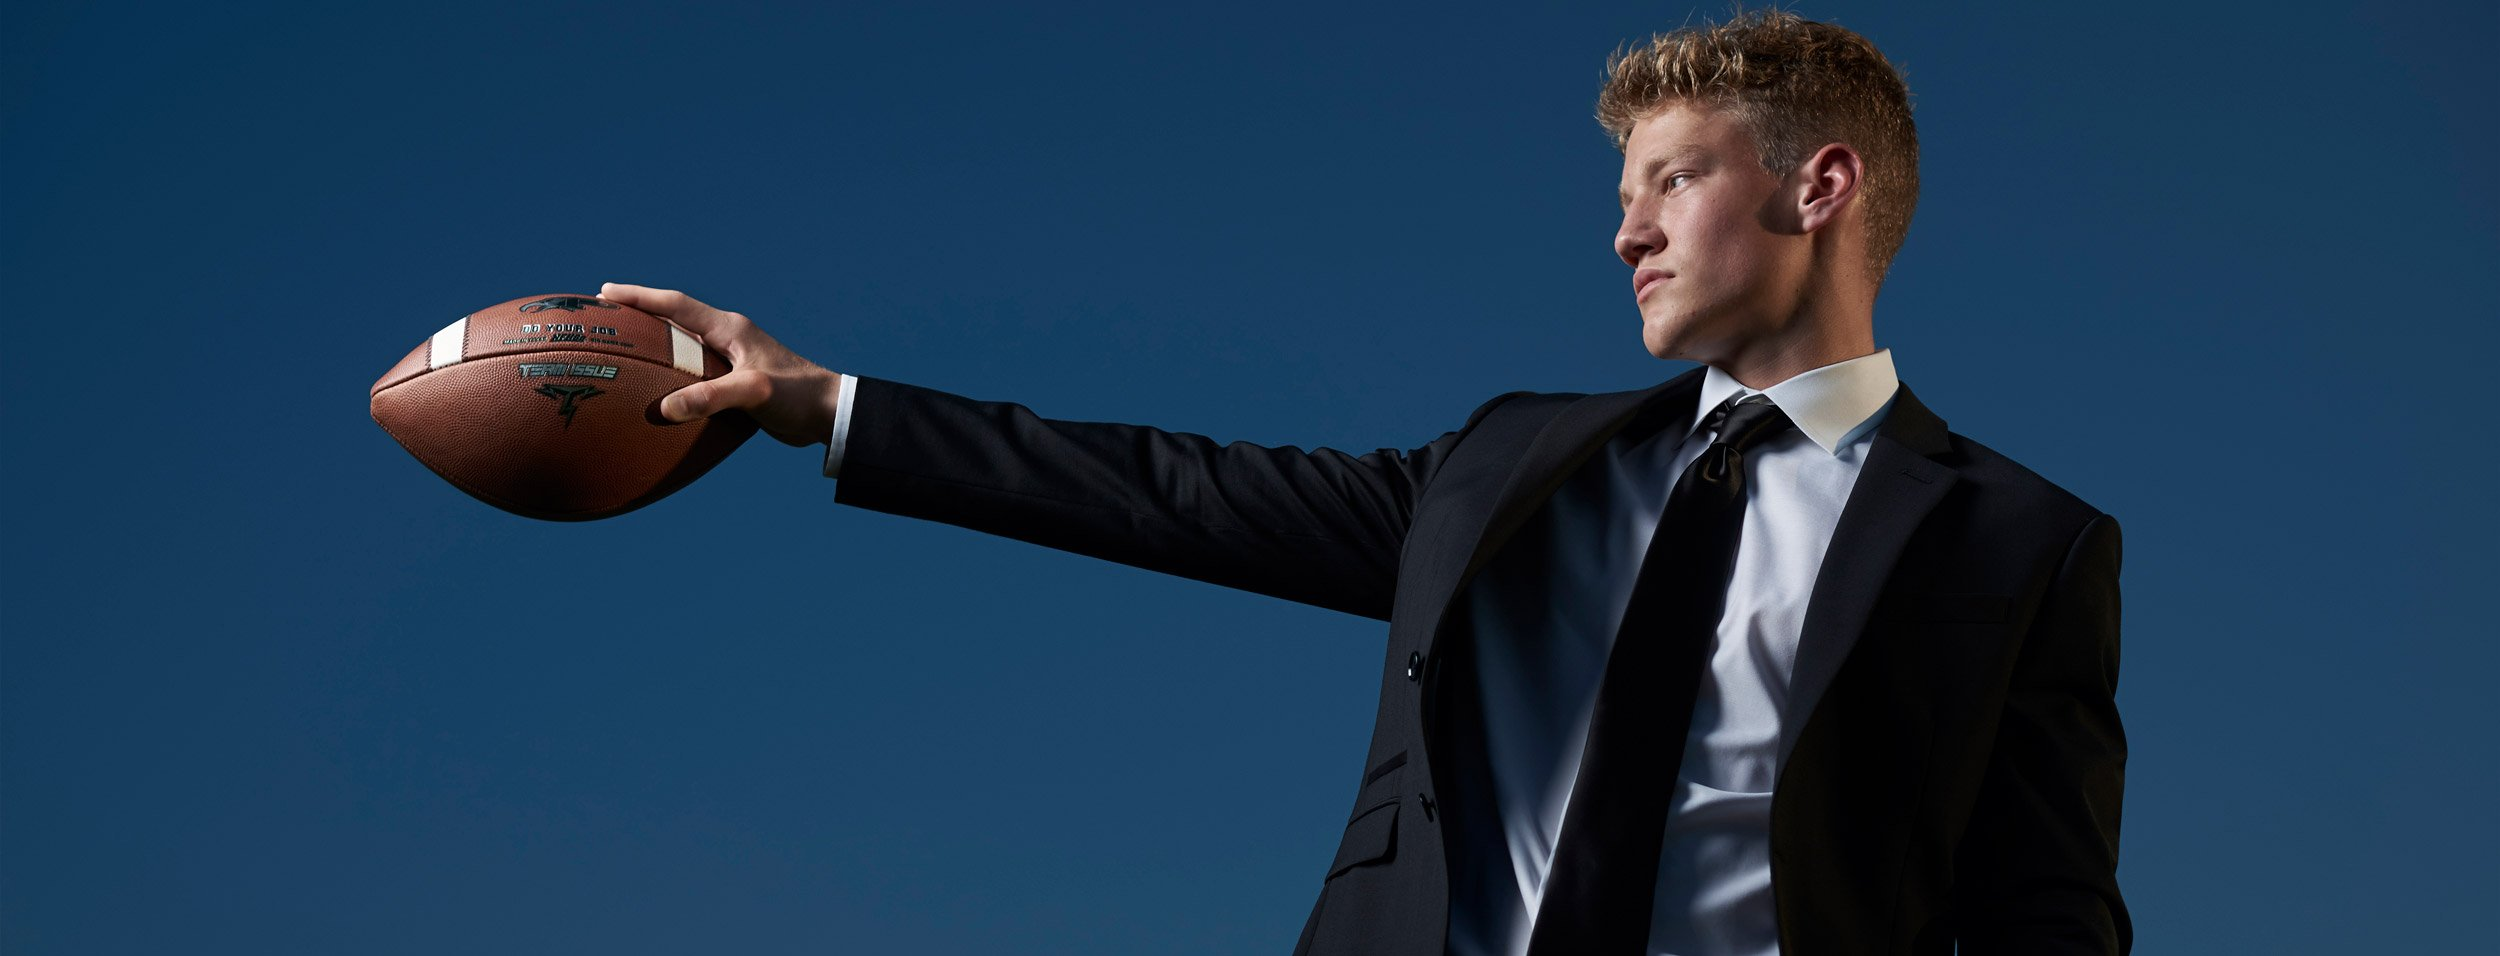 Dallas Sports Portraits from photographer Jeff Dietz of High School Athletes. Prosper football player in a black suit